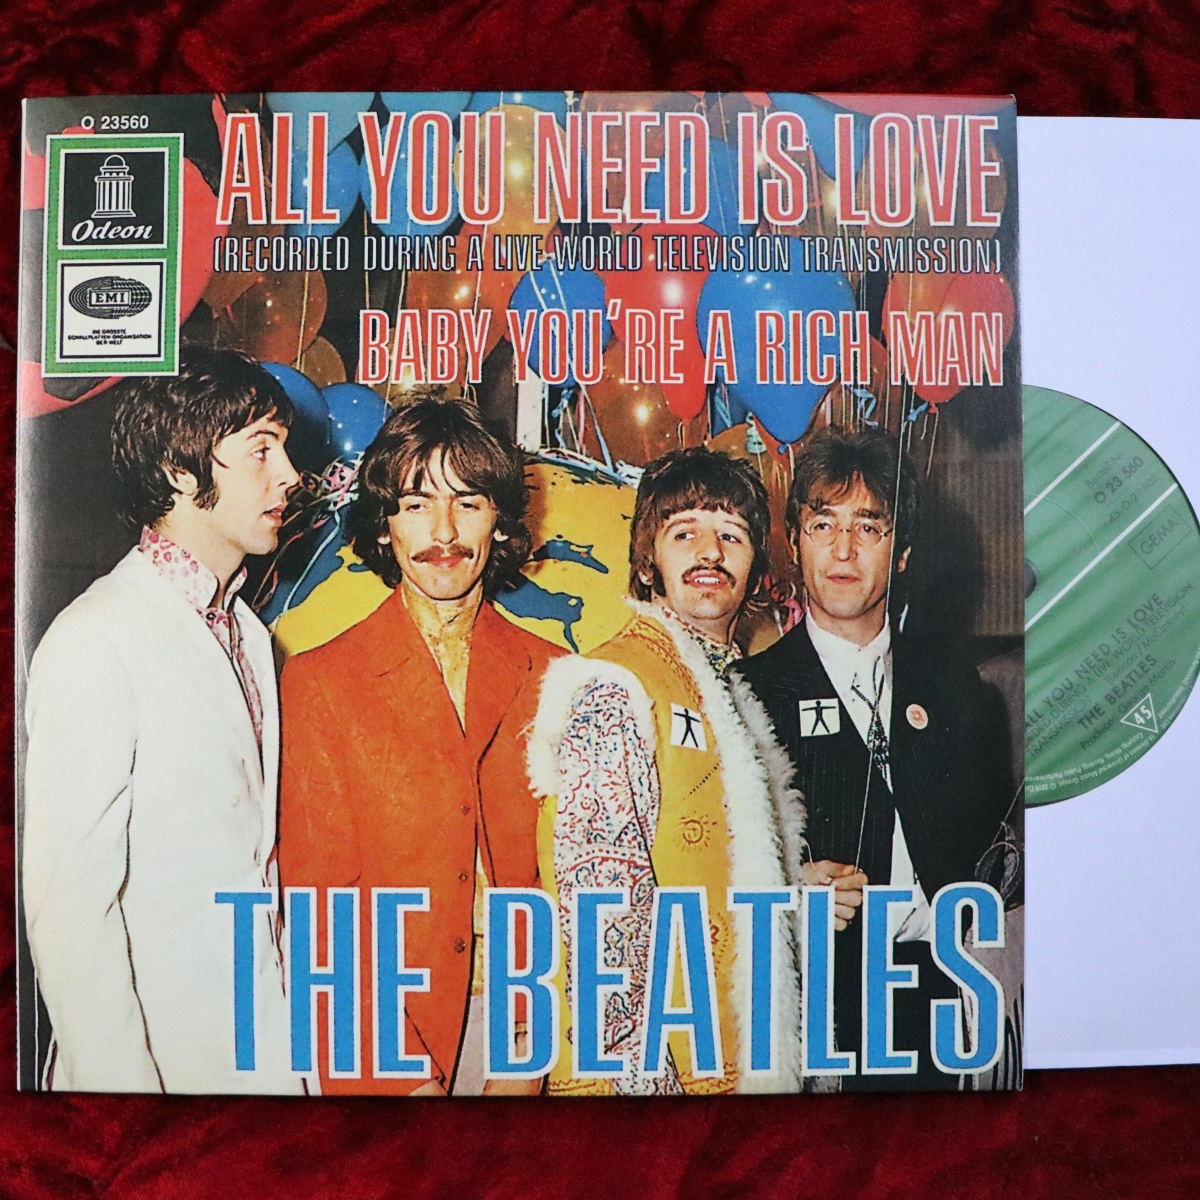 The Beatles/ビートルズ ALL YOU NEED IS LOVE/BABY YOU'RE A RICH MAN 2019シングルボックス バラ EU盤 (西ドイツ盤スリーブ) 21C26001